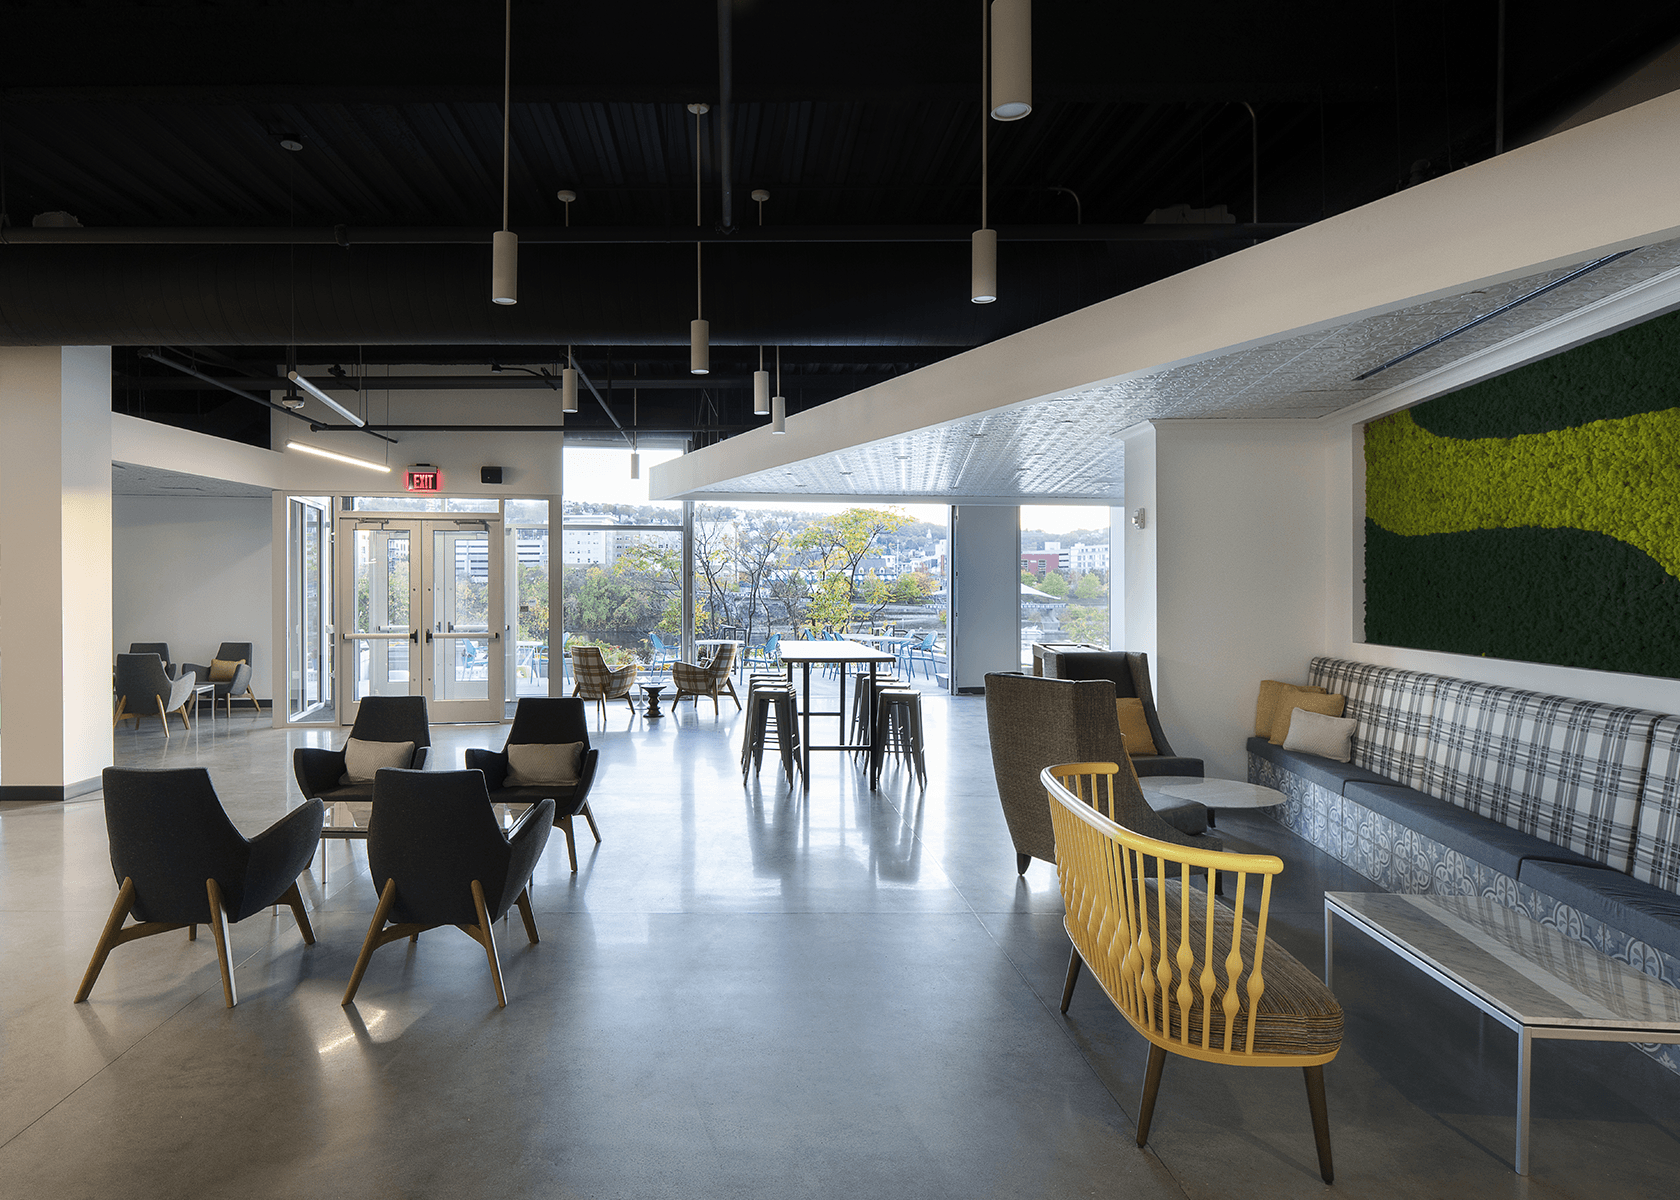 Collaborative space with chairs, tables, and a bay door to outside